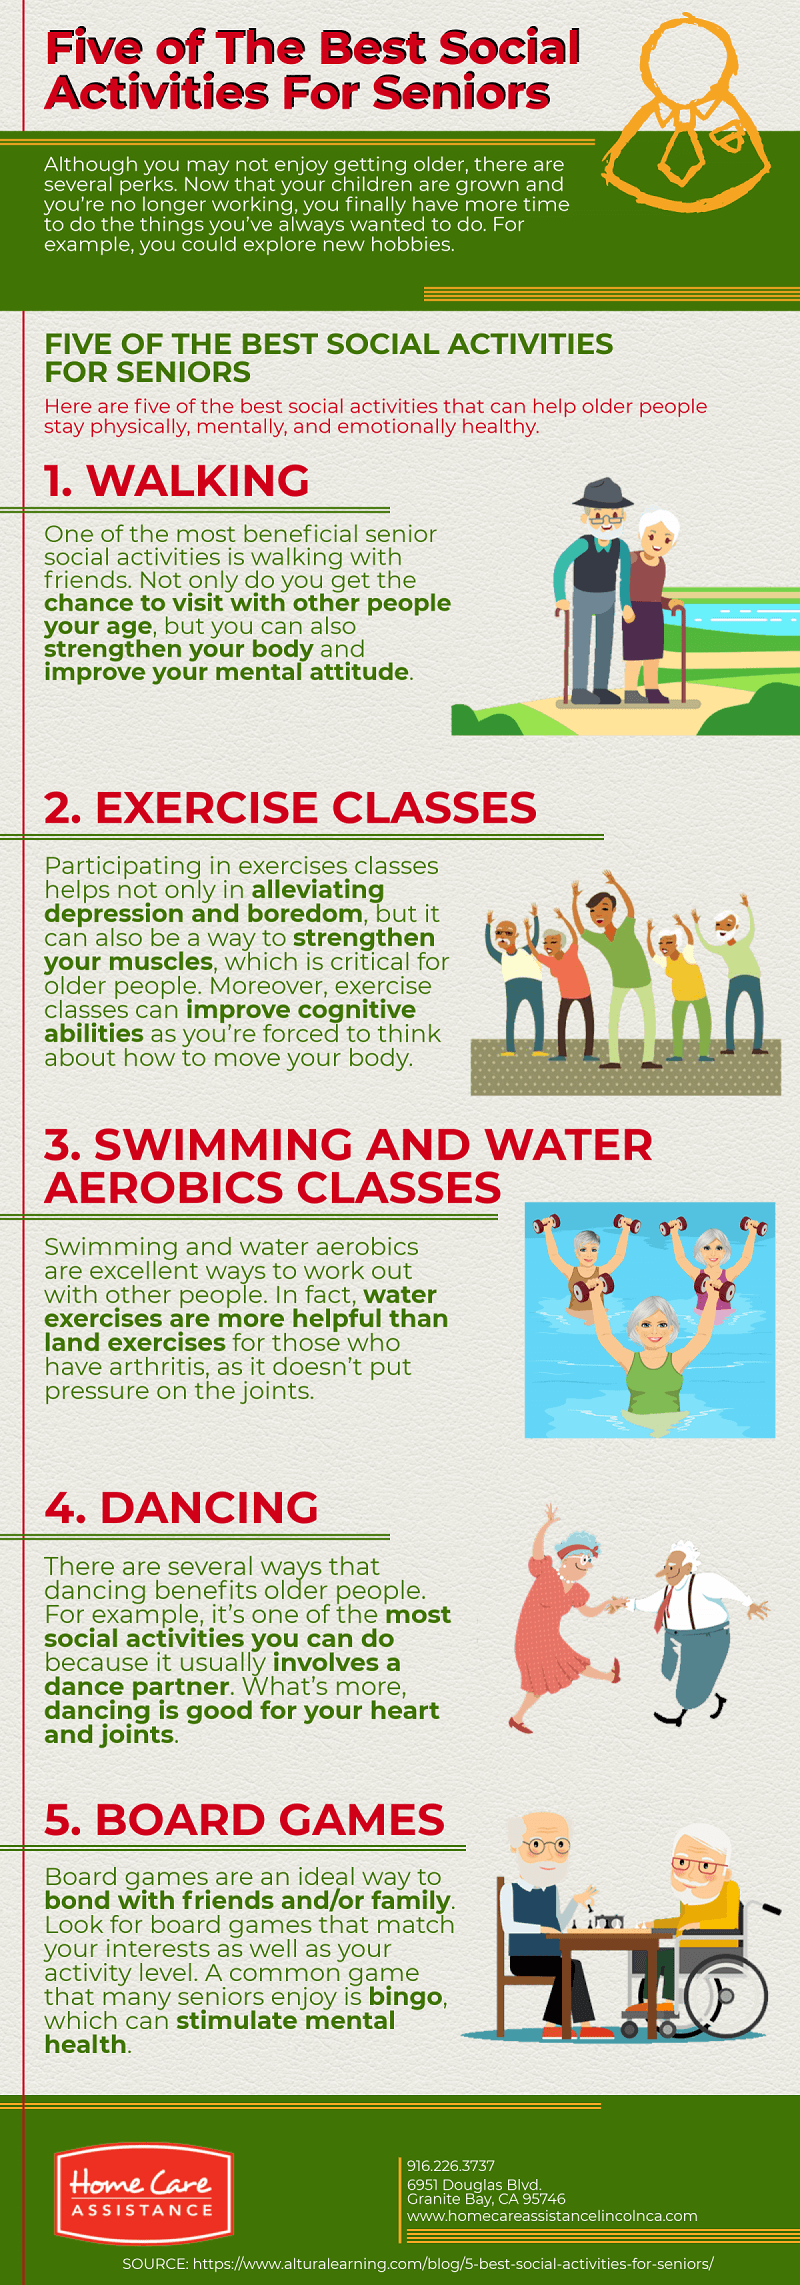 5 Awesome Social Activities for Aging Adults [Infographic]